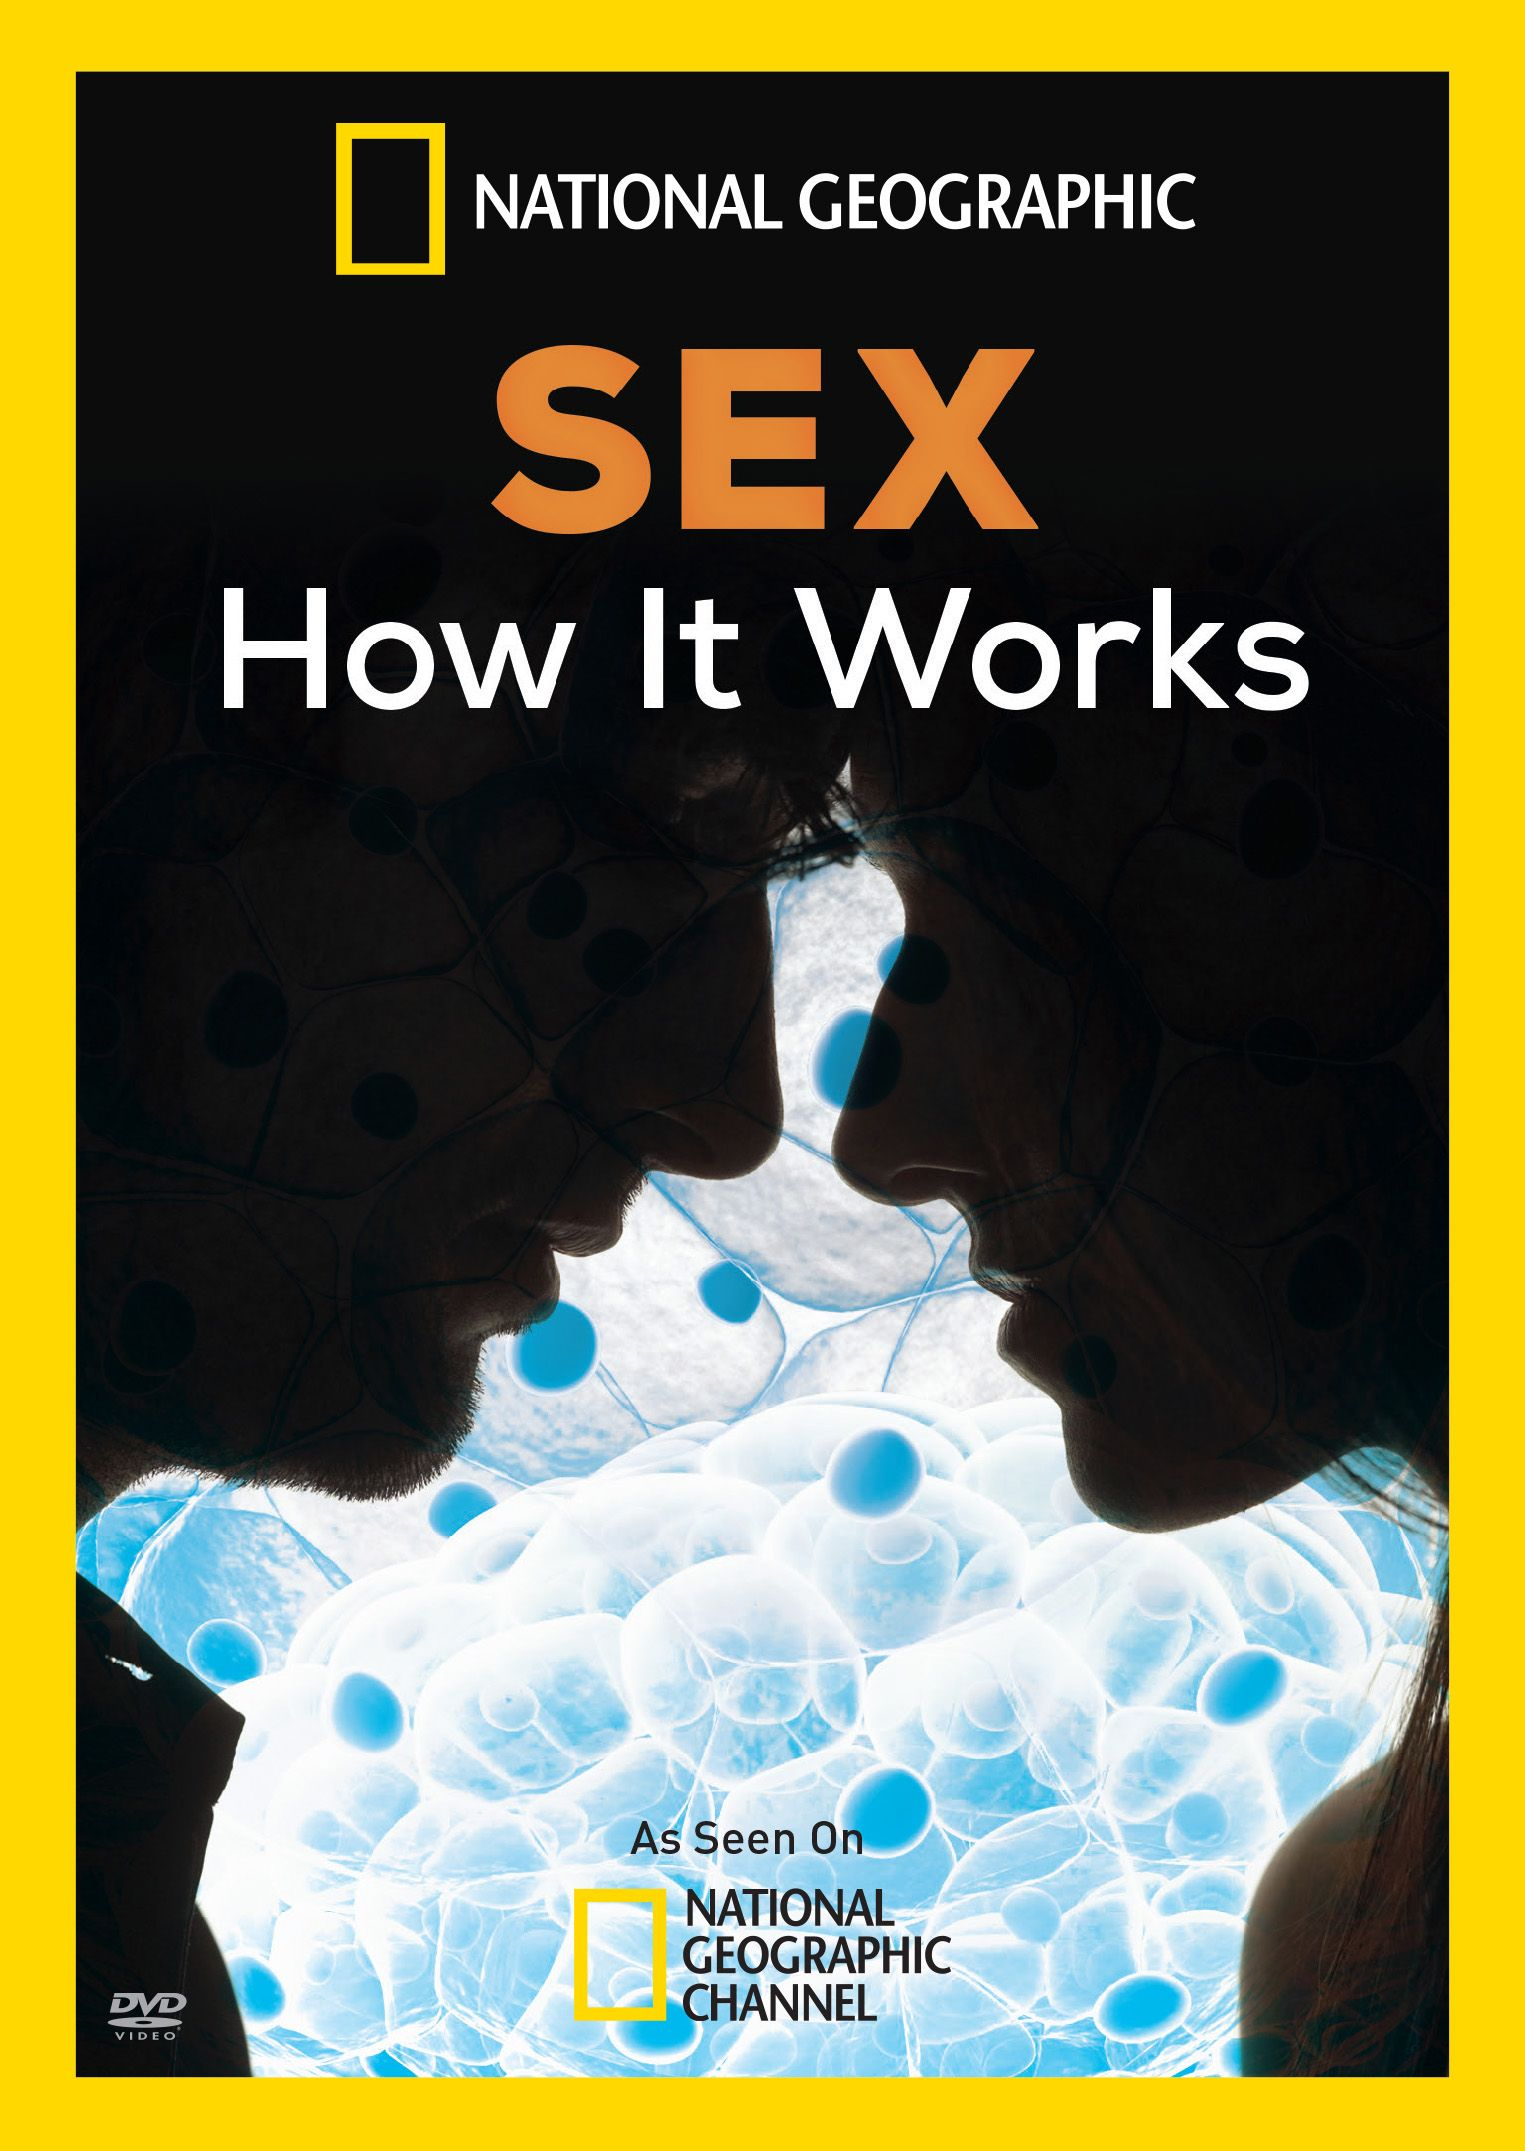 National Geographic: Sex - How It Works